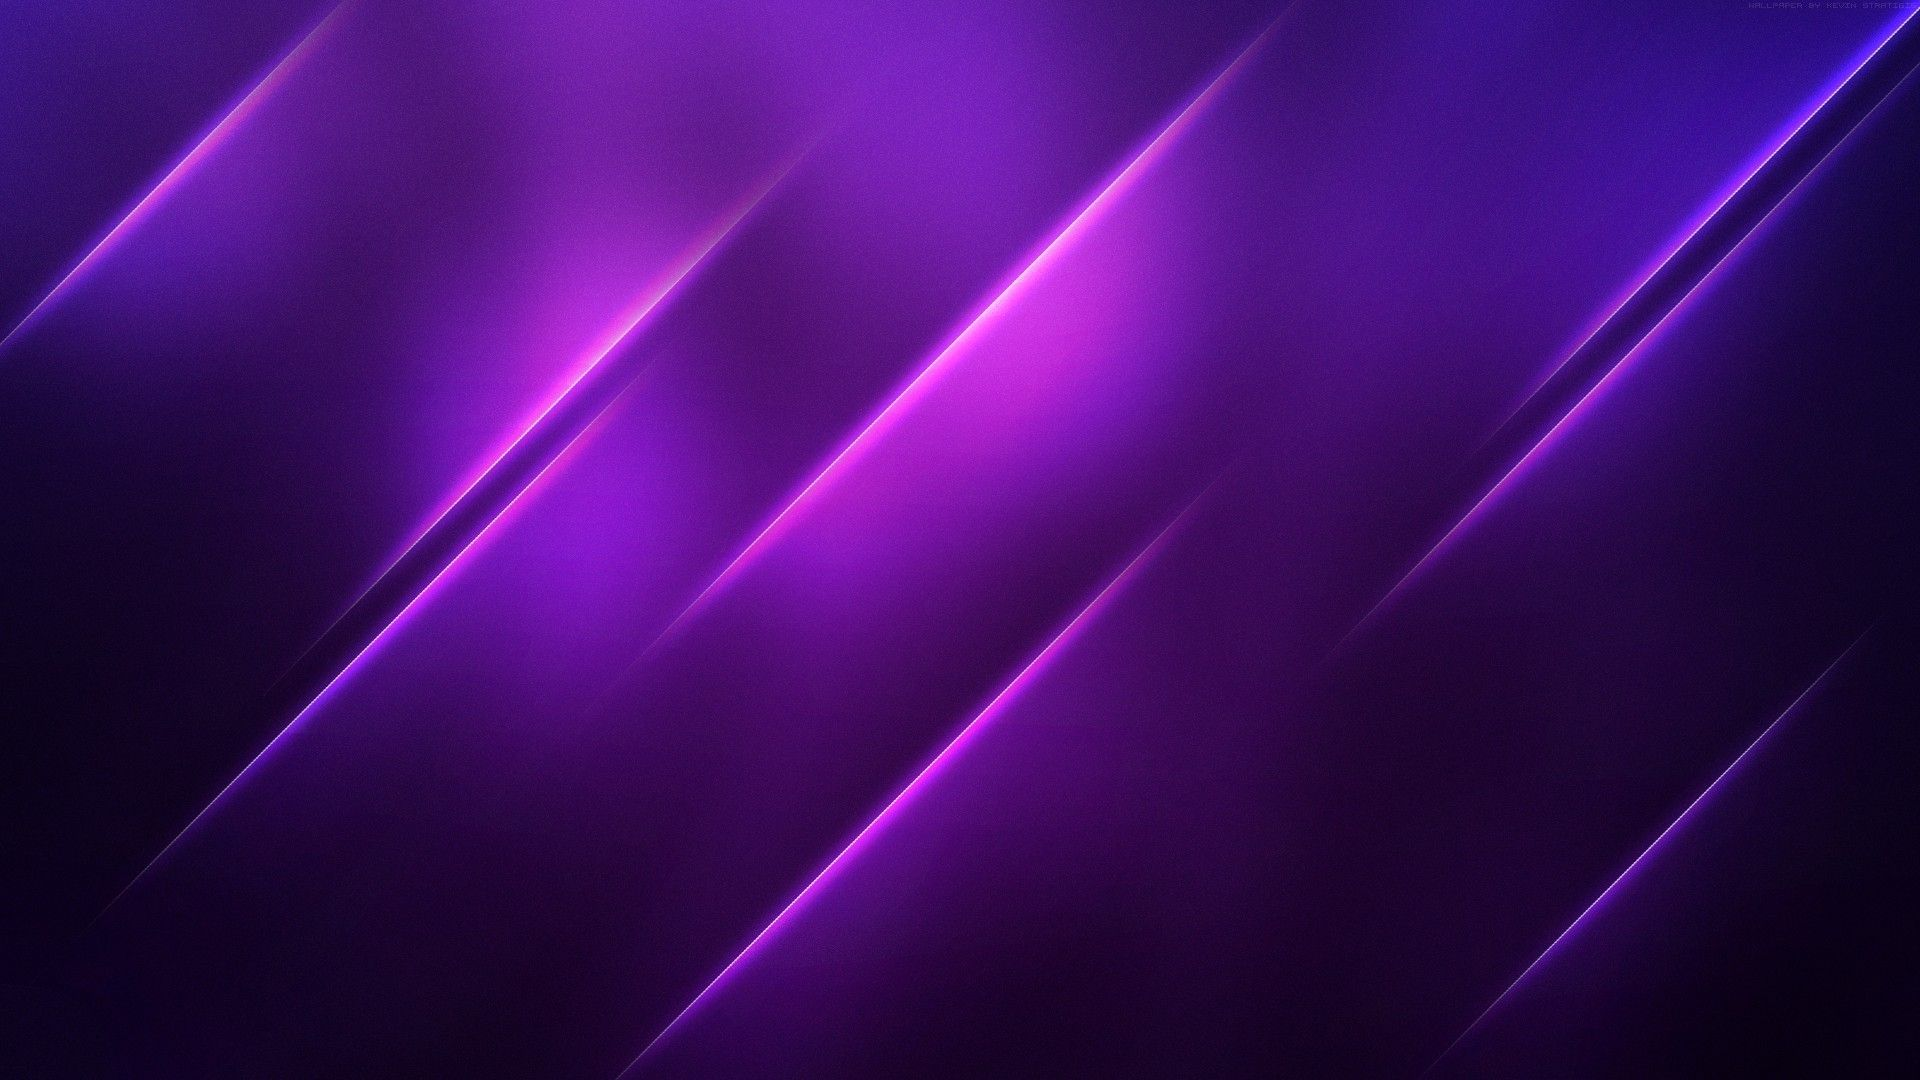 Awesome Purple Dragons | Solid Purple Backgrounds - HD Wallpapers ...